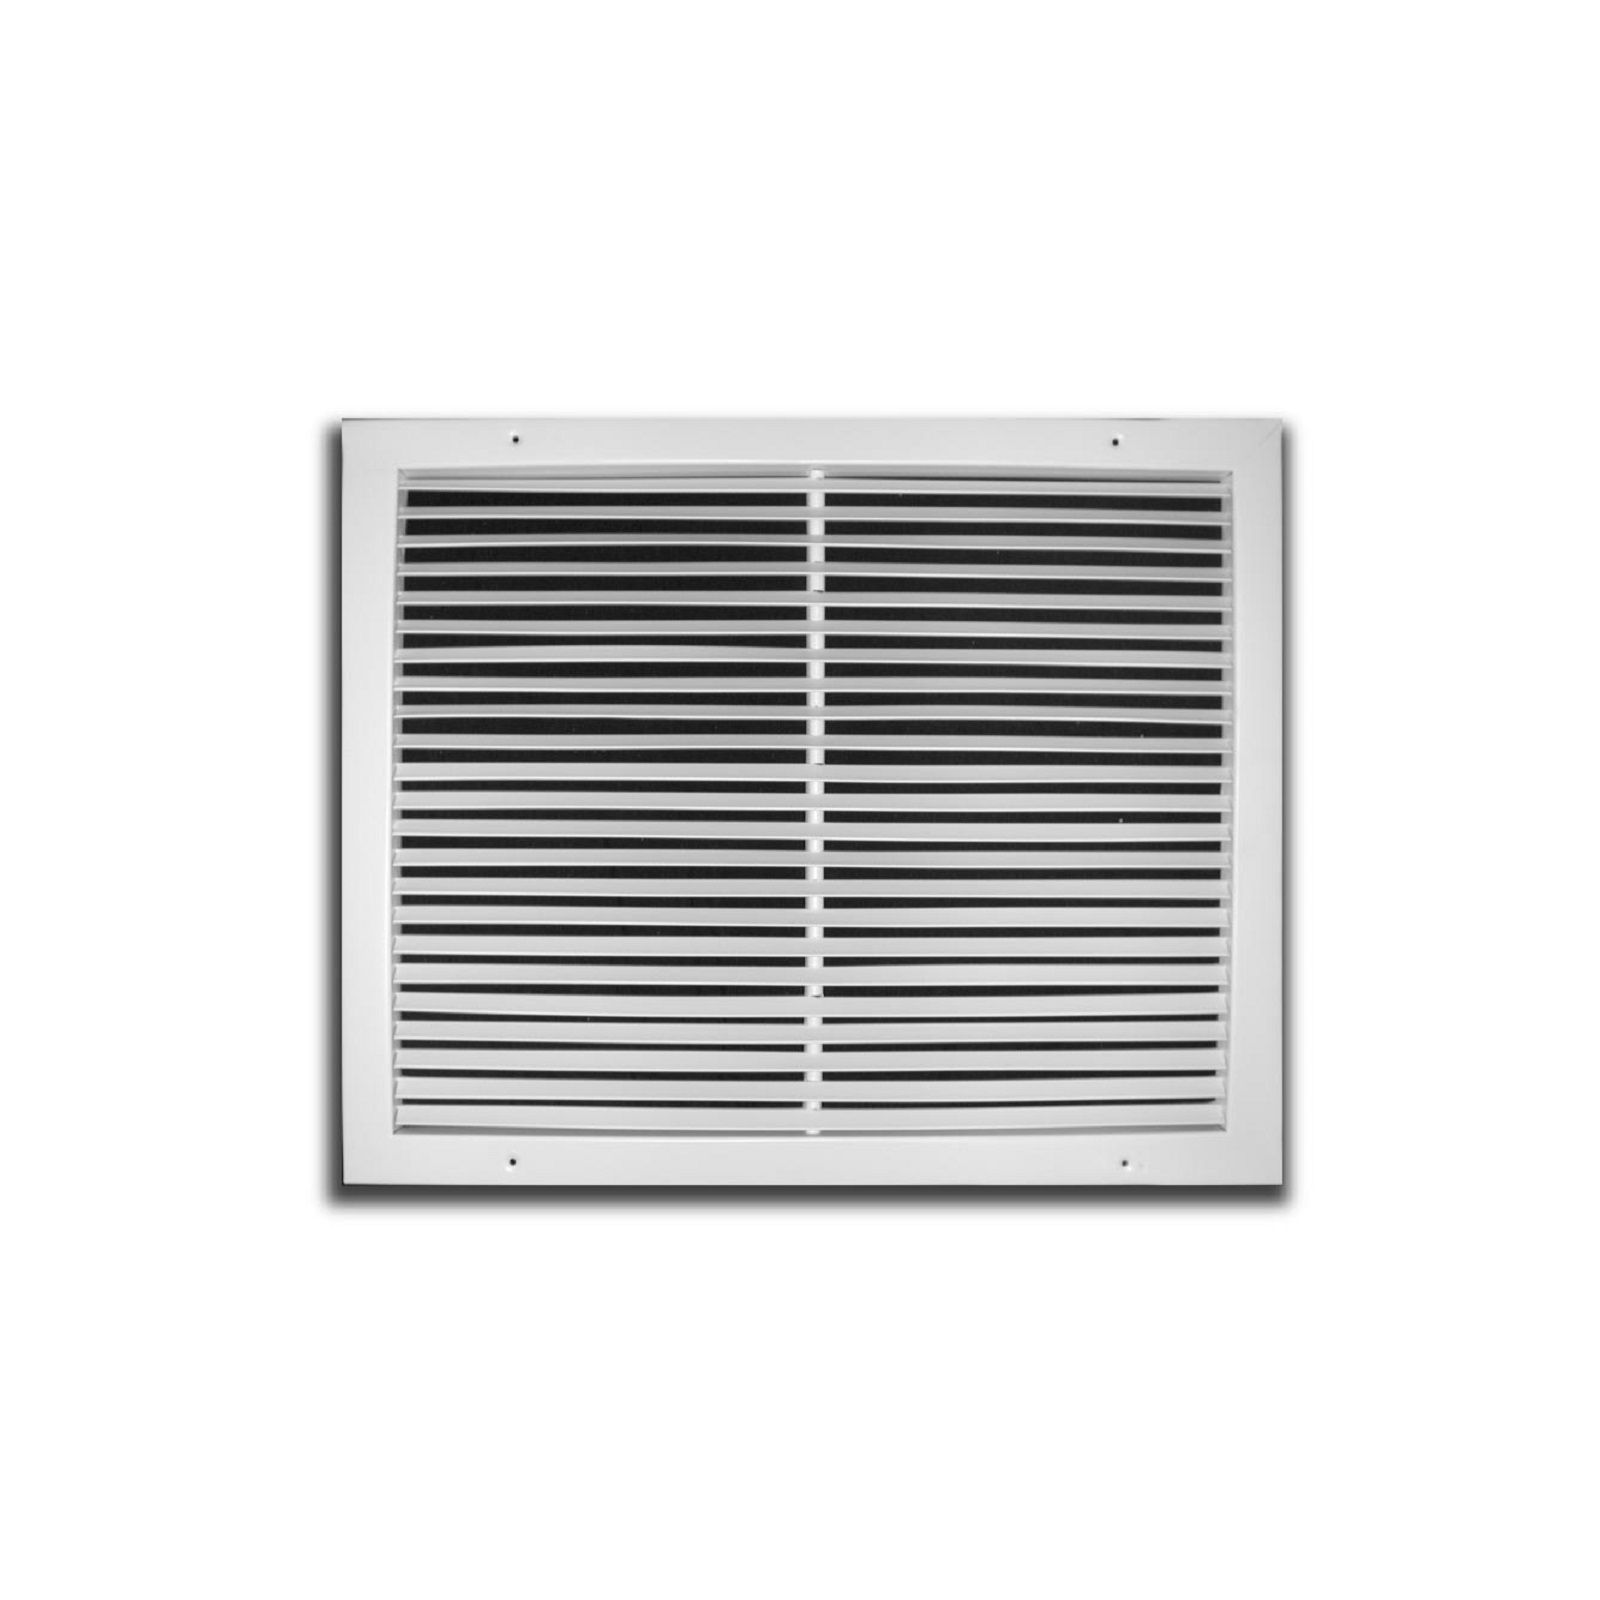 "TRUaire 270 08X08 - Steel Fixed Bar Return Air Grille, White, 08"" X 08"""